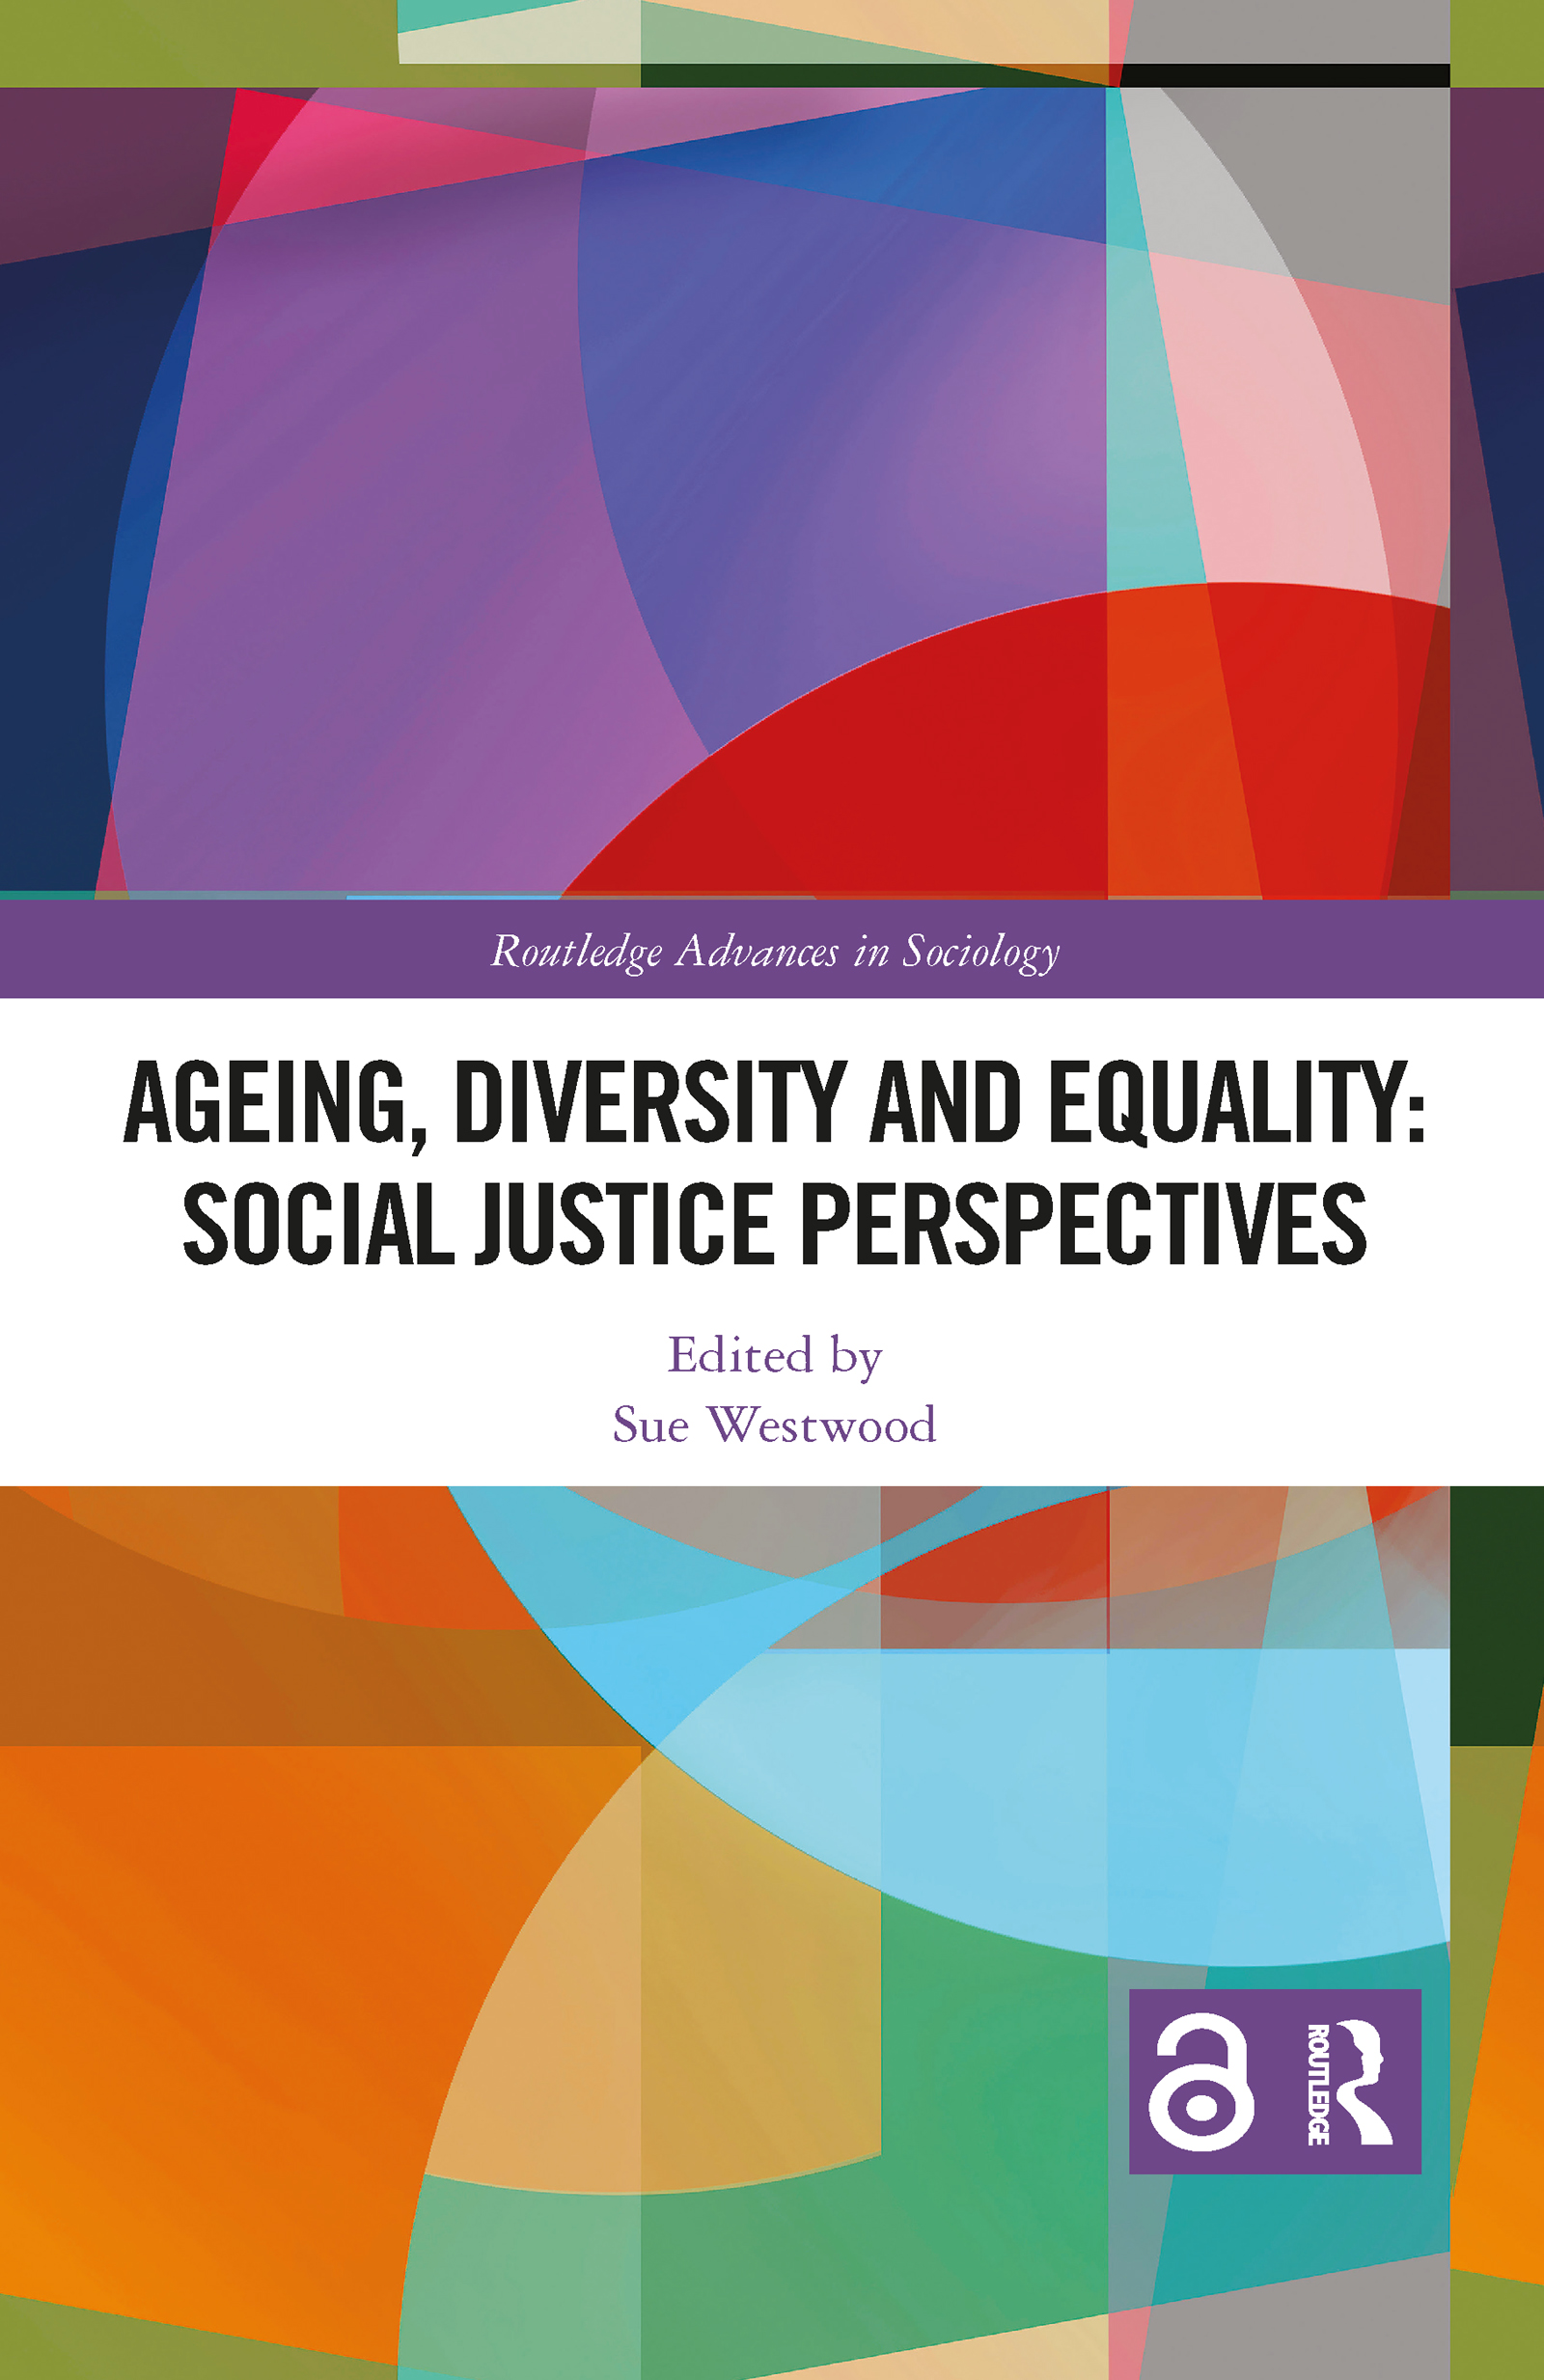 Ageing, Diversity and Equality: Social Justice Perspectives (Open Access)